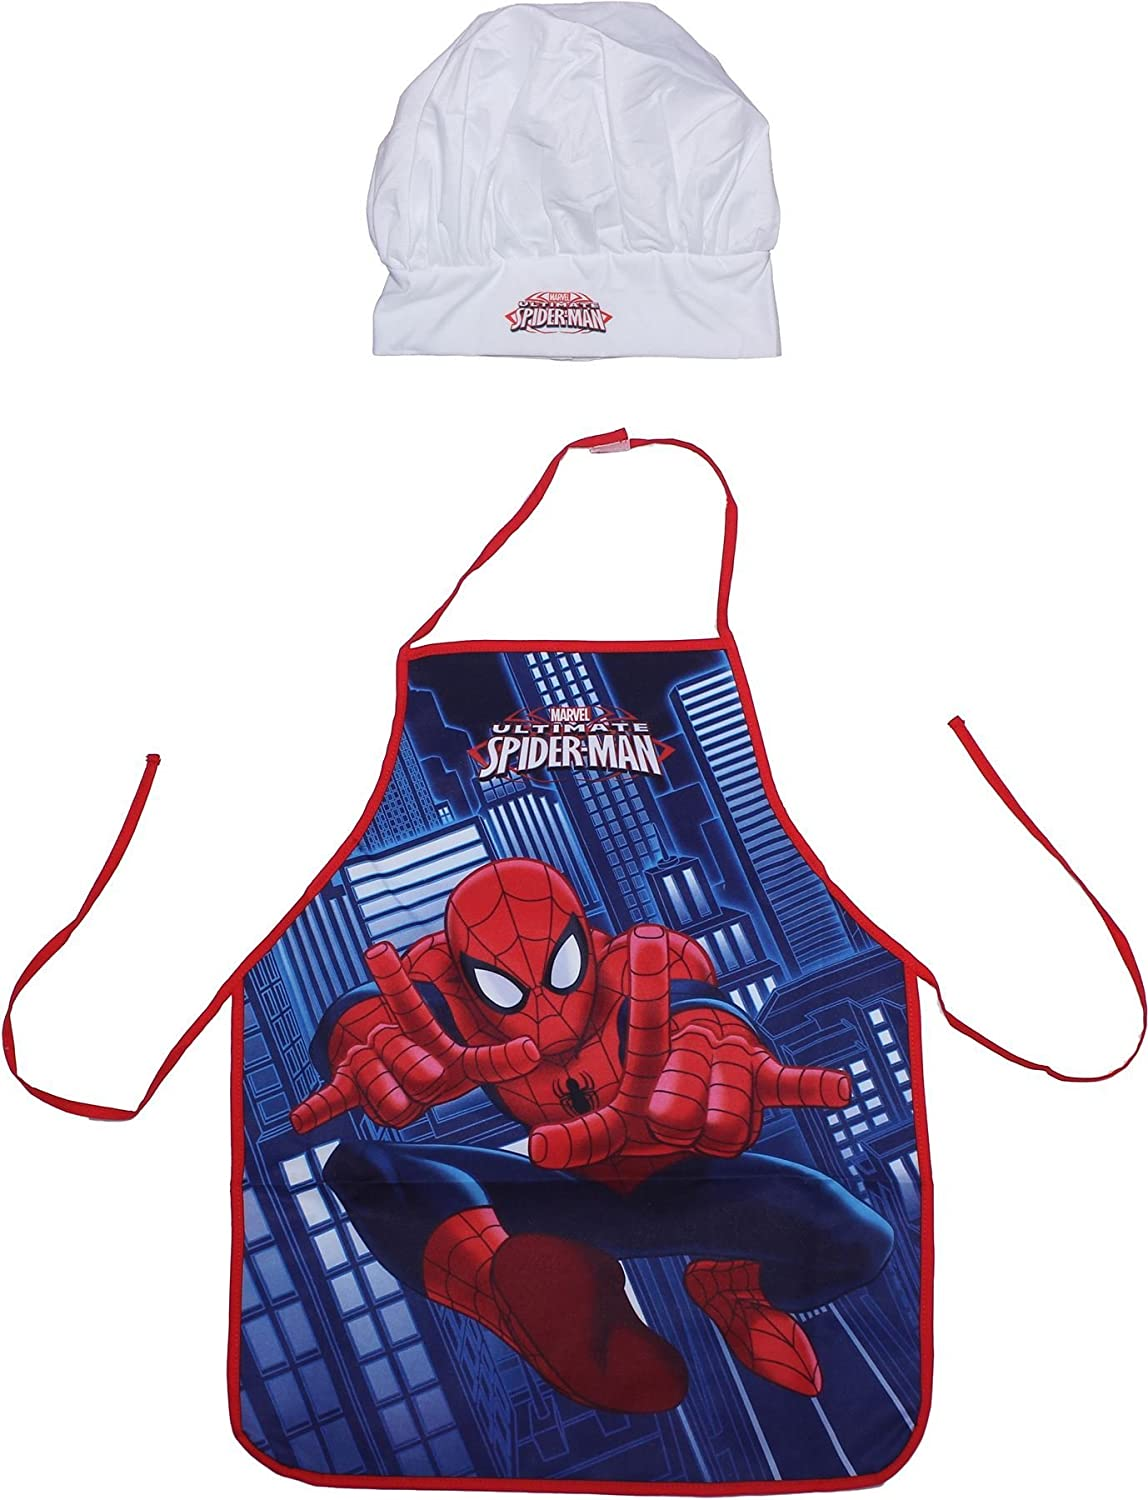 Beta Service Spiderman EL50801 Chef Set of 2, Plastic, Coloured, 15 x 25 x 12 cm